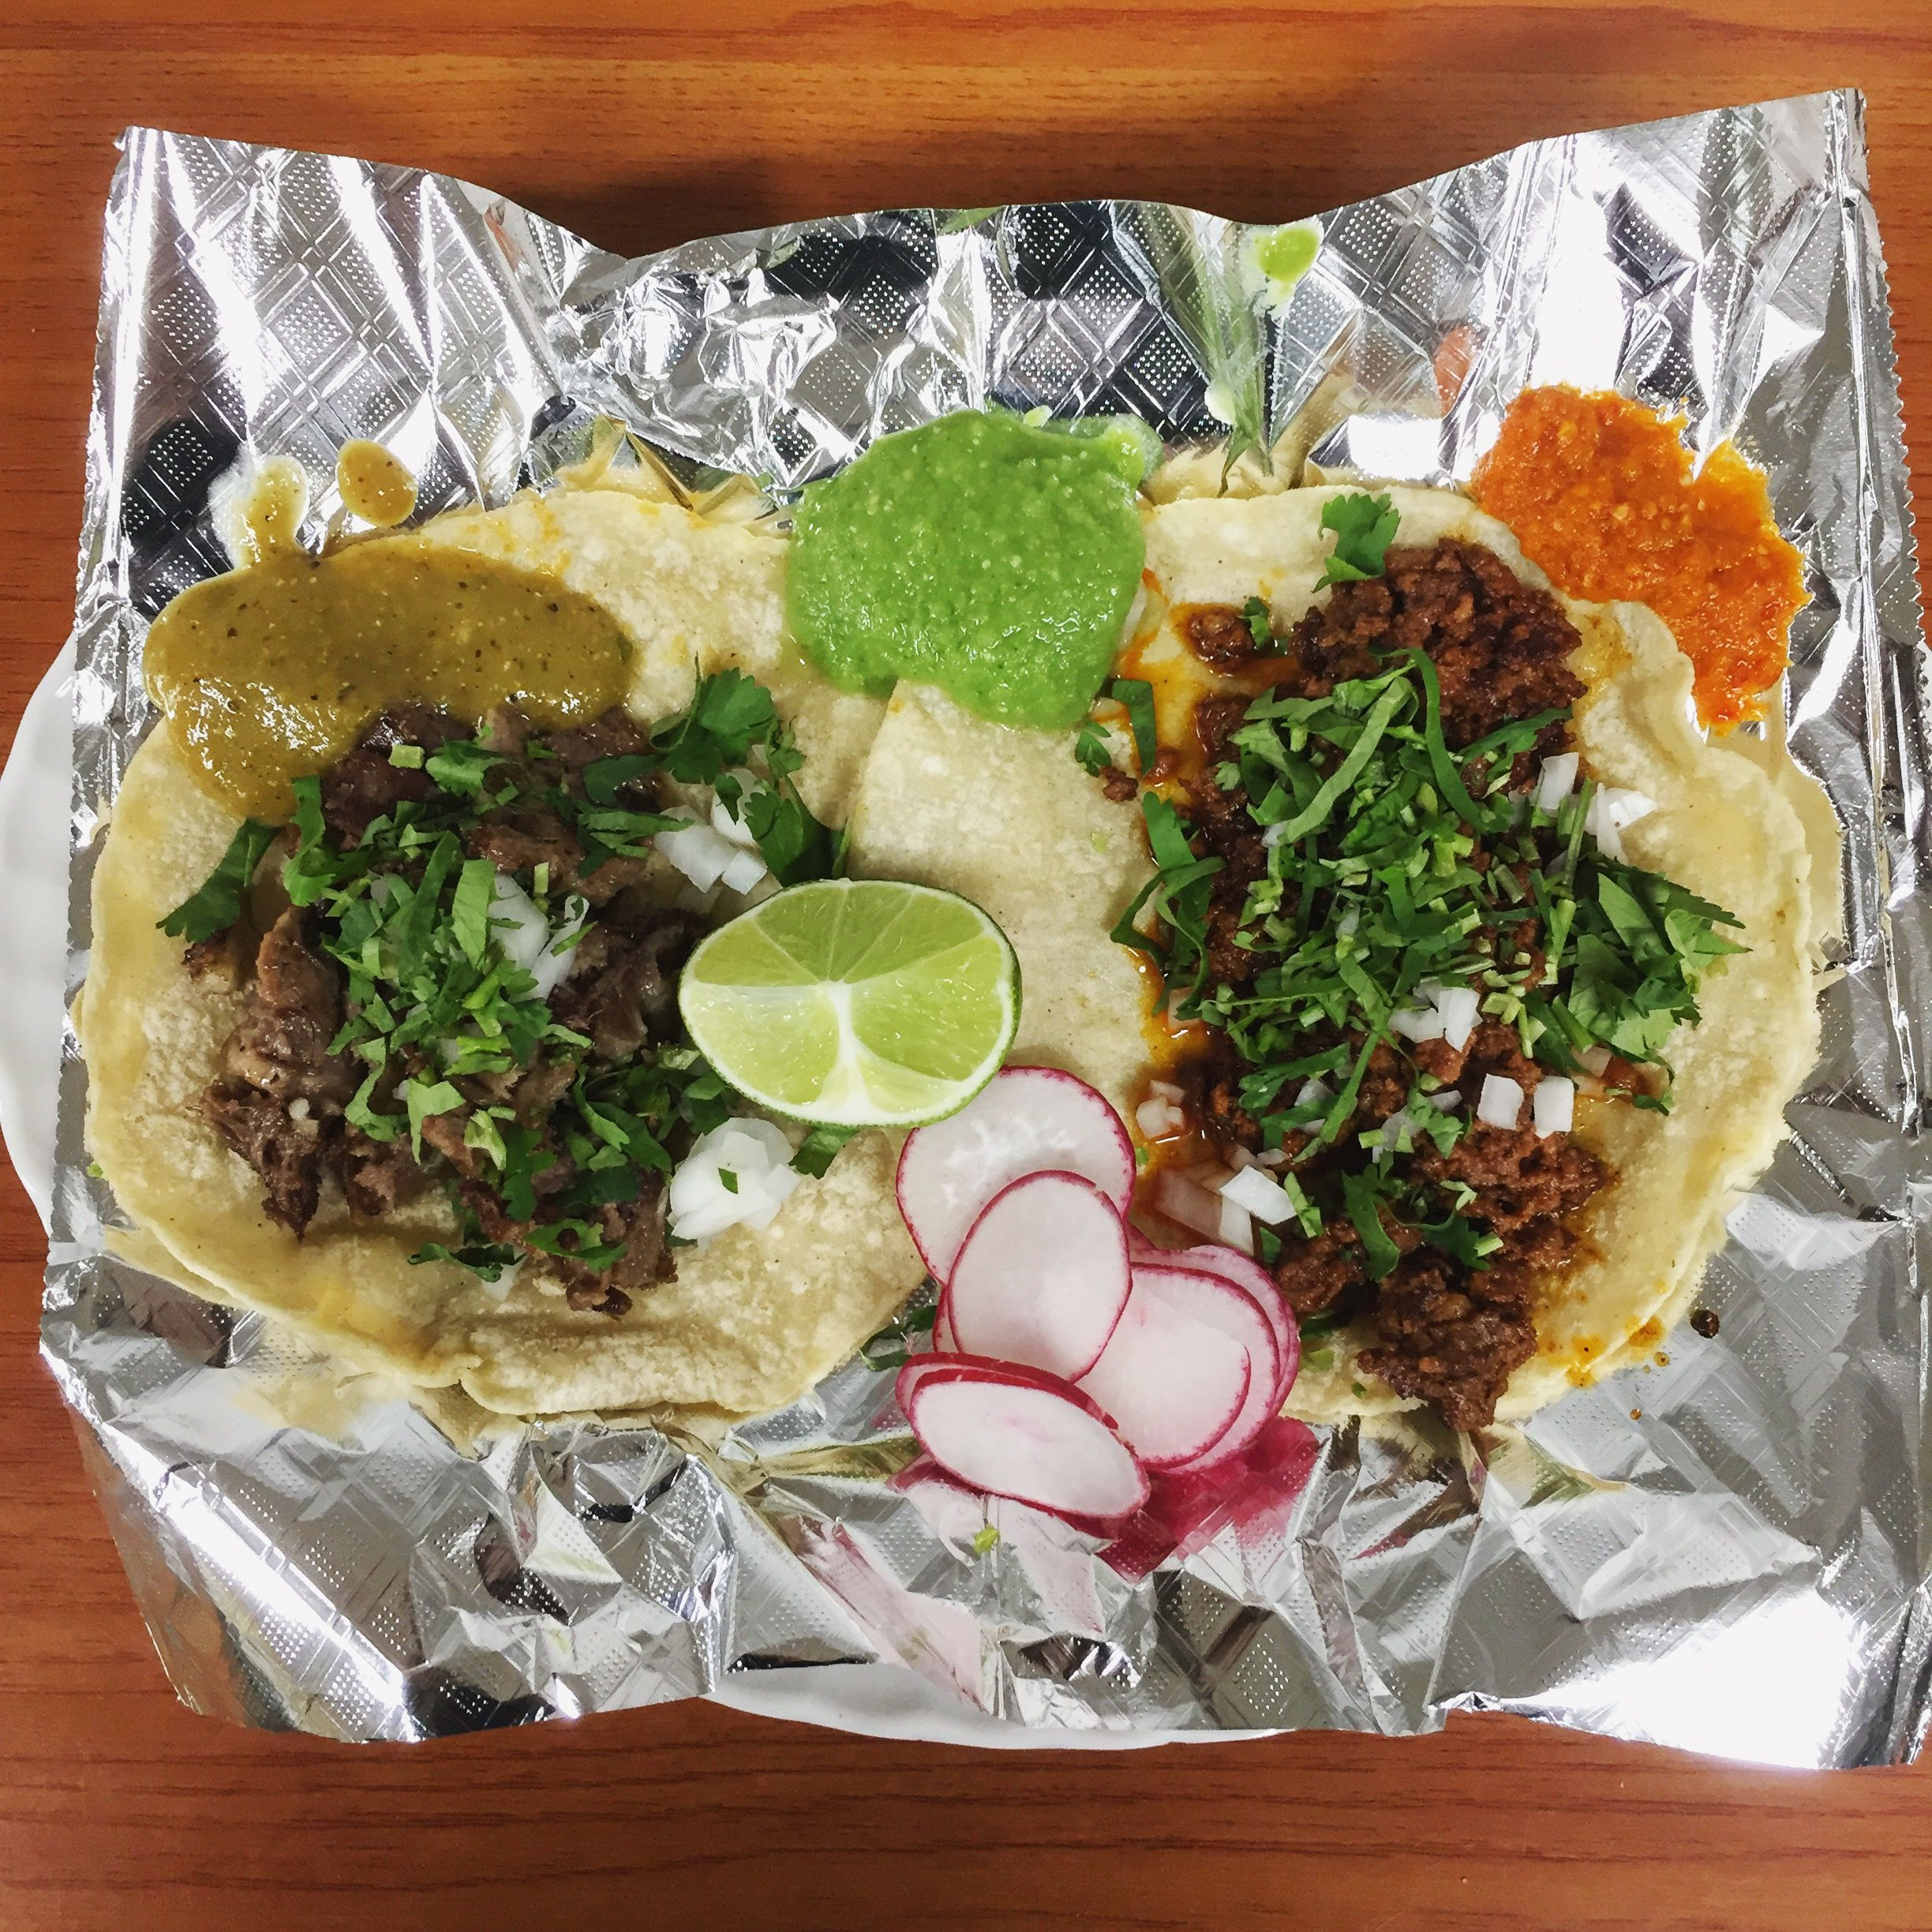 Where to Find the Best Tacos in West Carolina